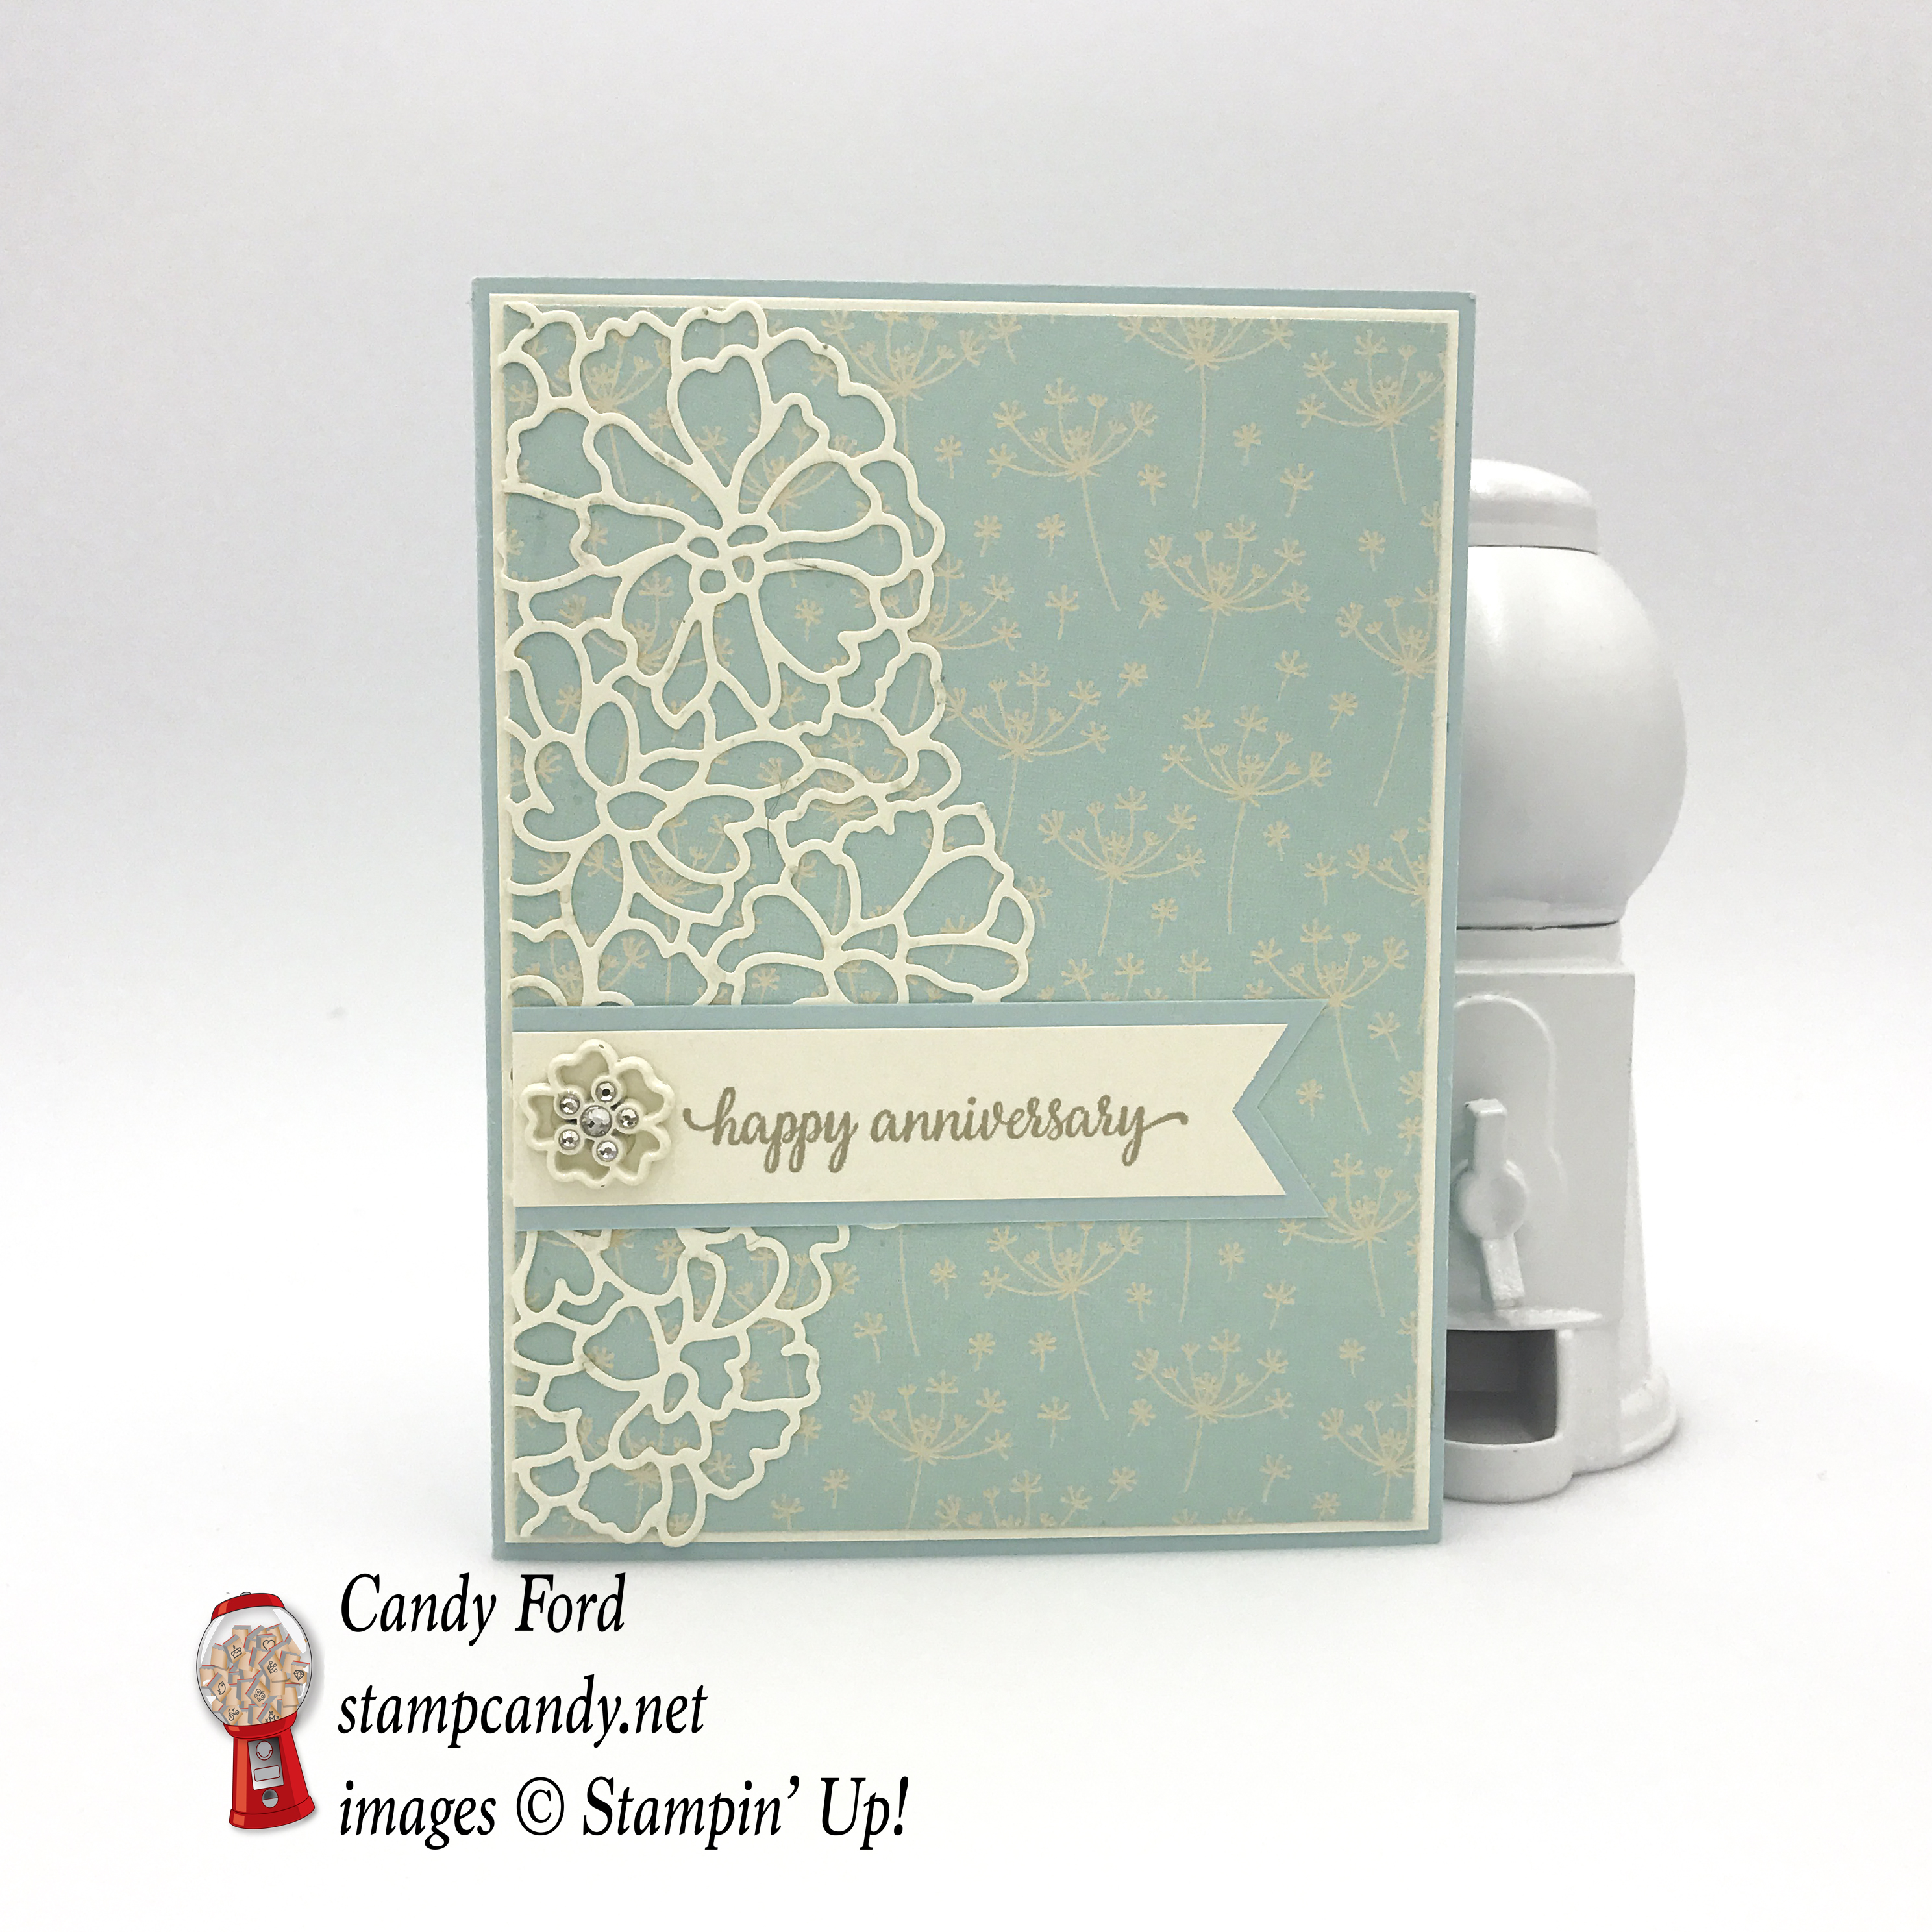 This exquisite Happy Anniversary card is made with the So In Love bundle, stamp set, So Detailed Thinlits Dies, Falling In Love DSP and embellishments by Stampin' Up! #stampcandy